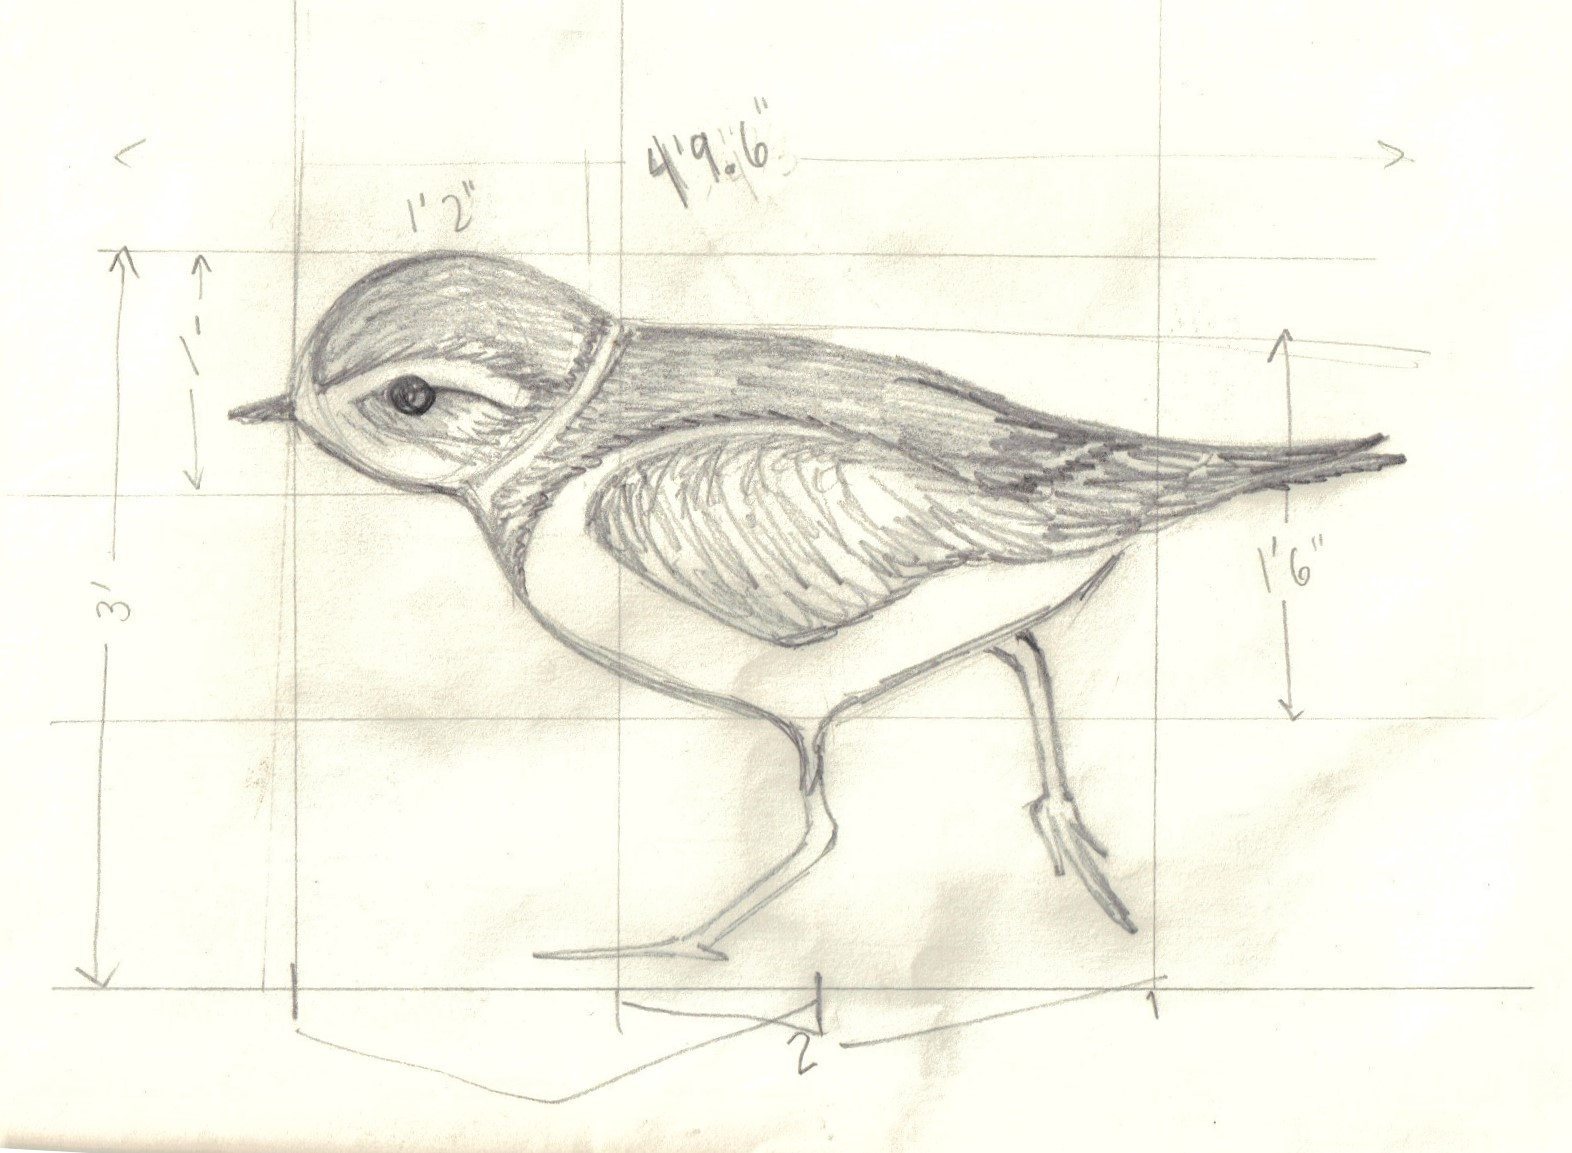 adorable sketch of a plover in black and white